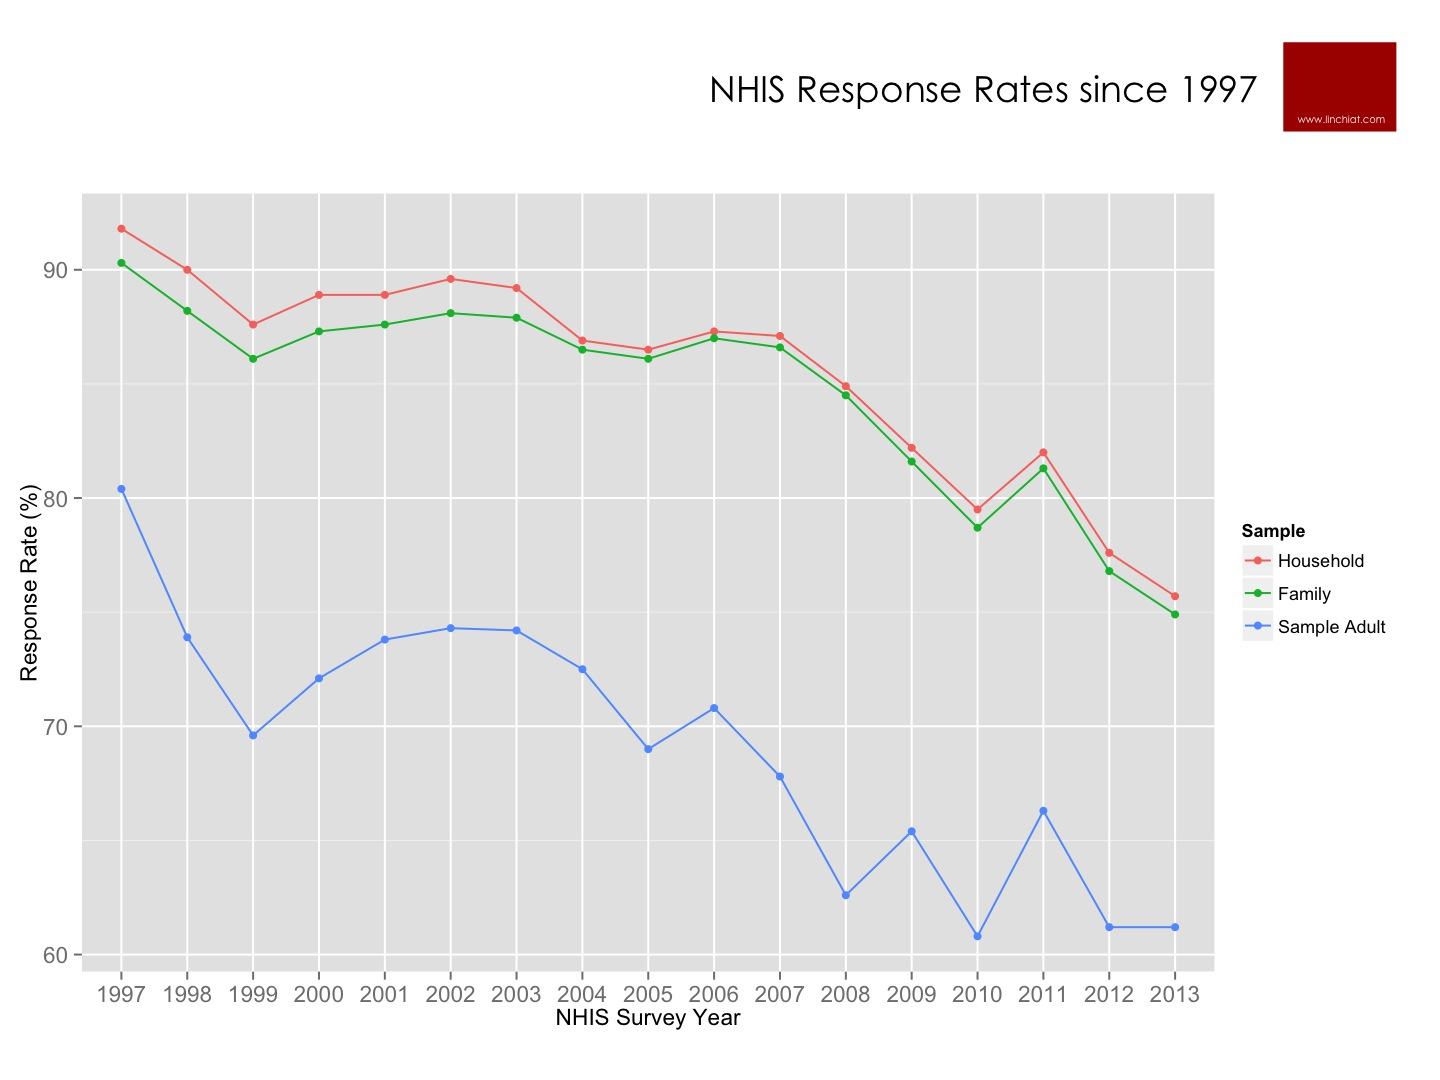 NHIS Response Rates since 1997.jpg